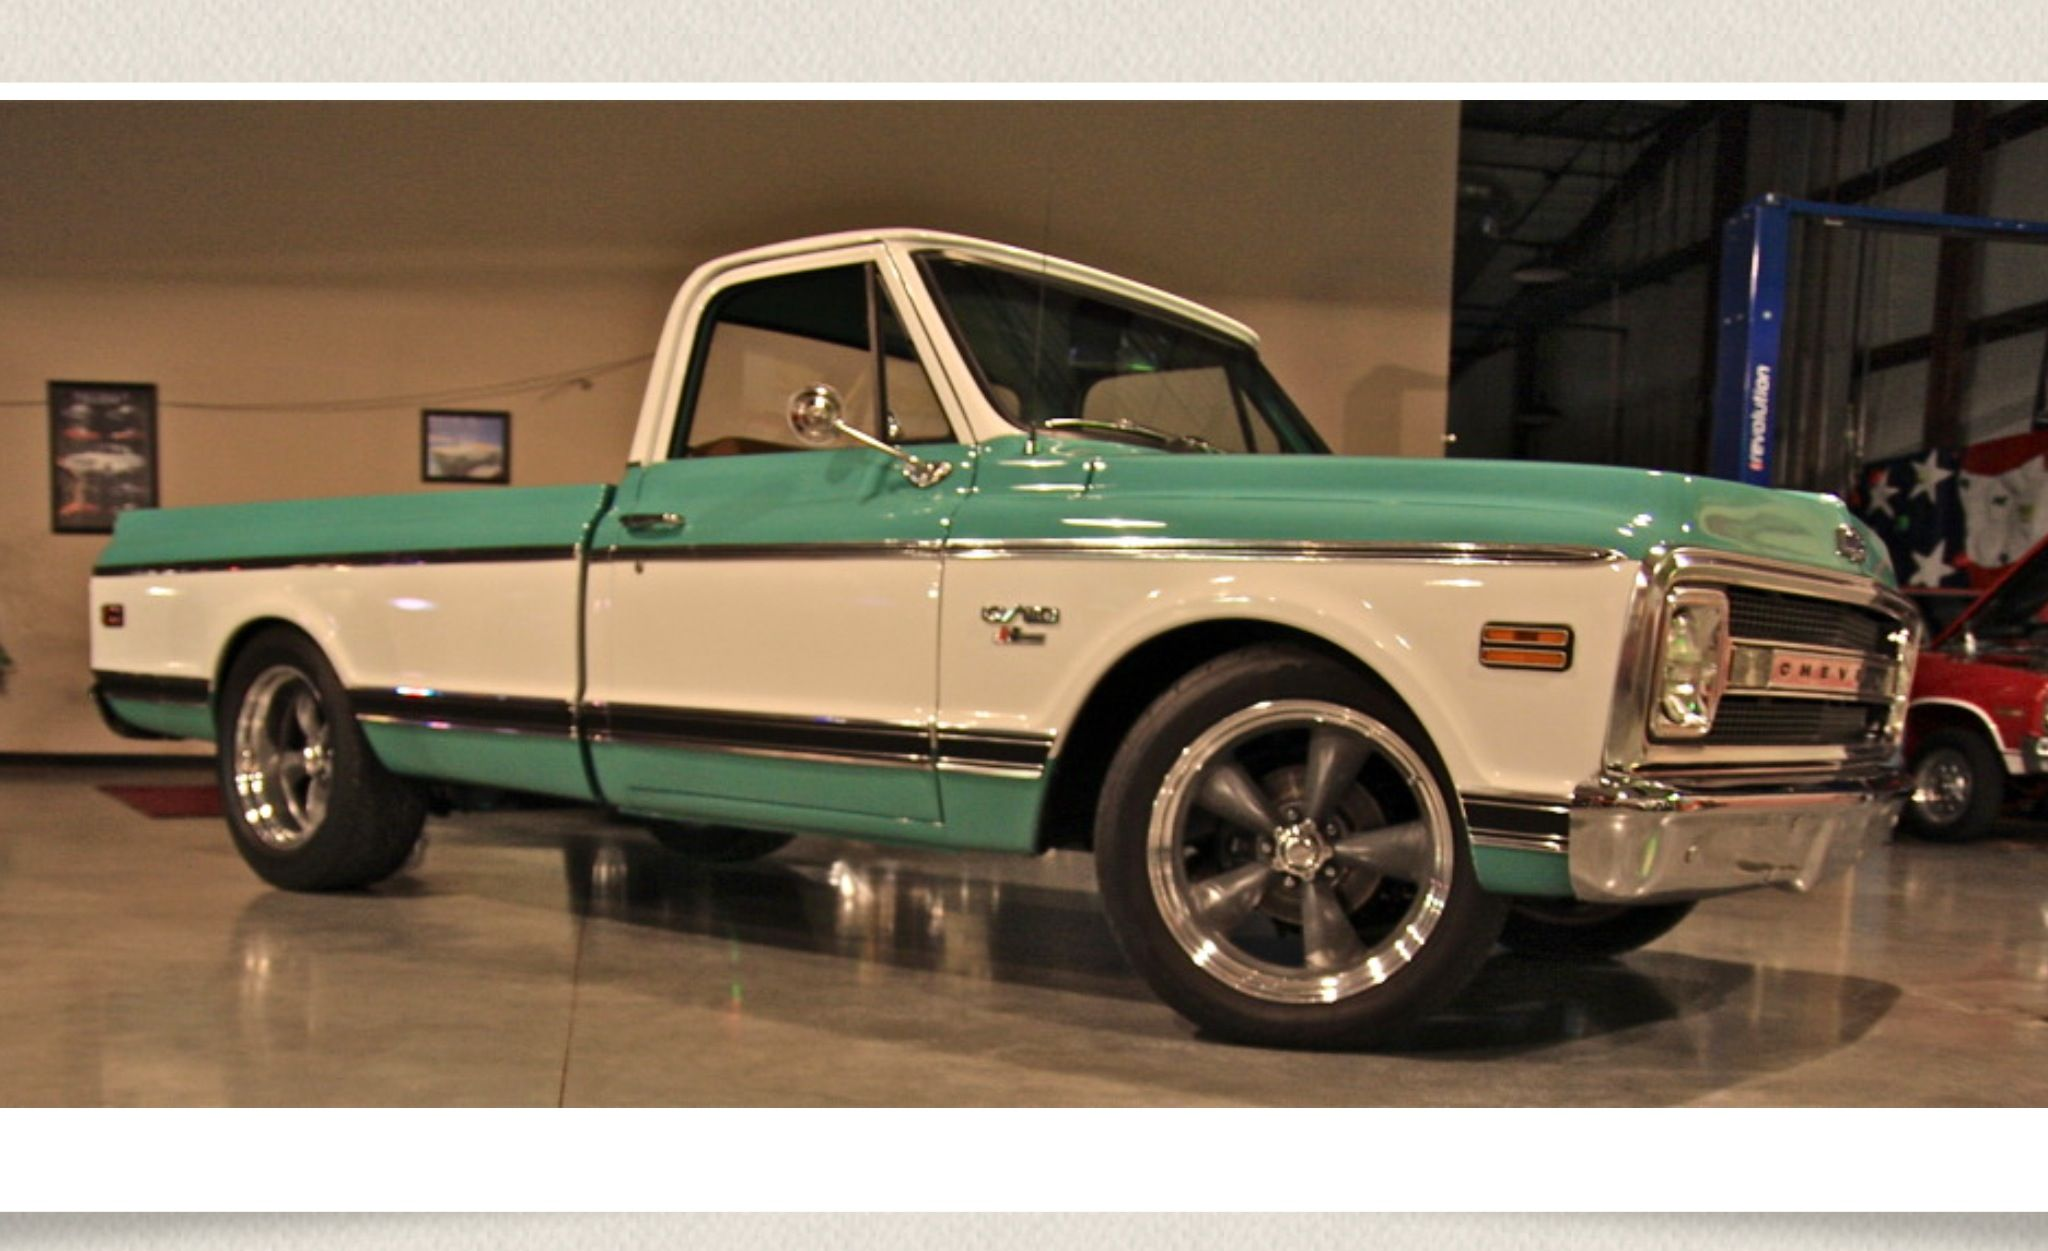 1969 c10 what a dream boat wow